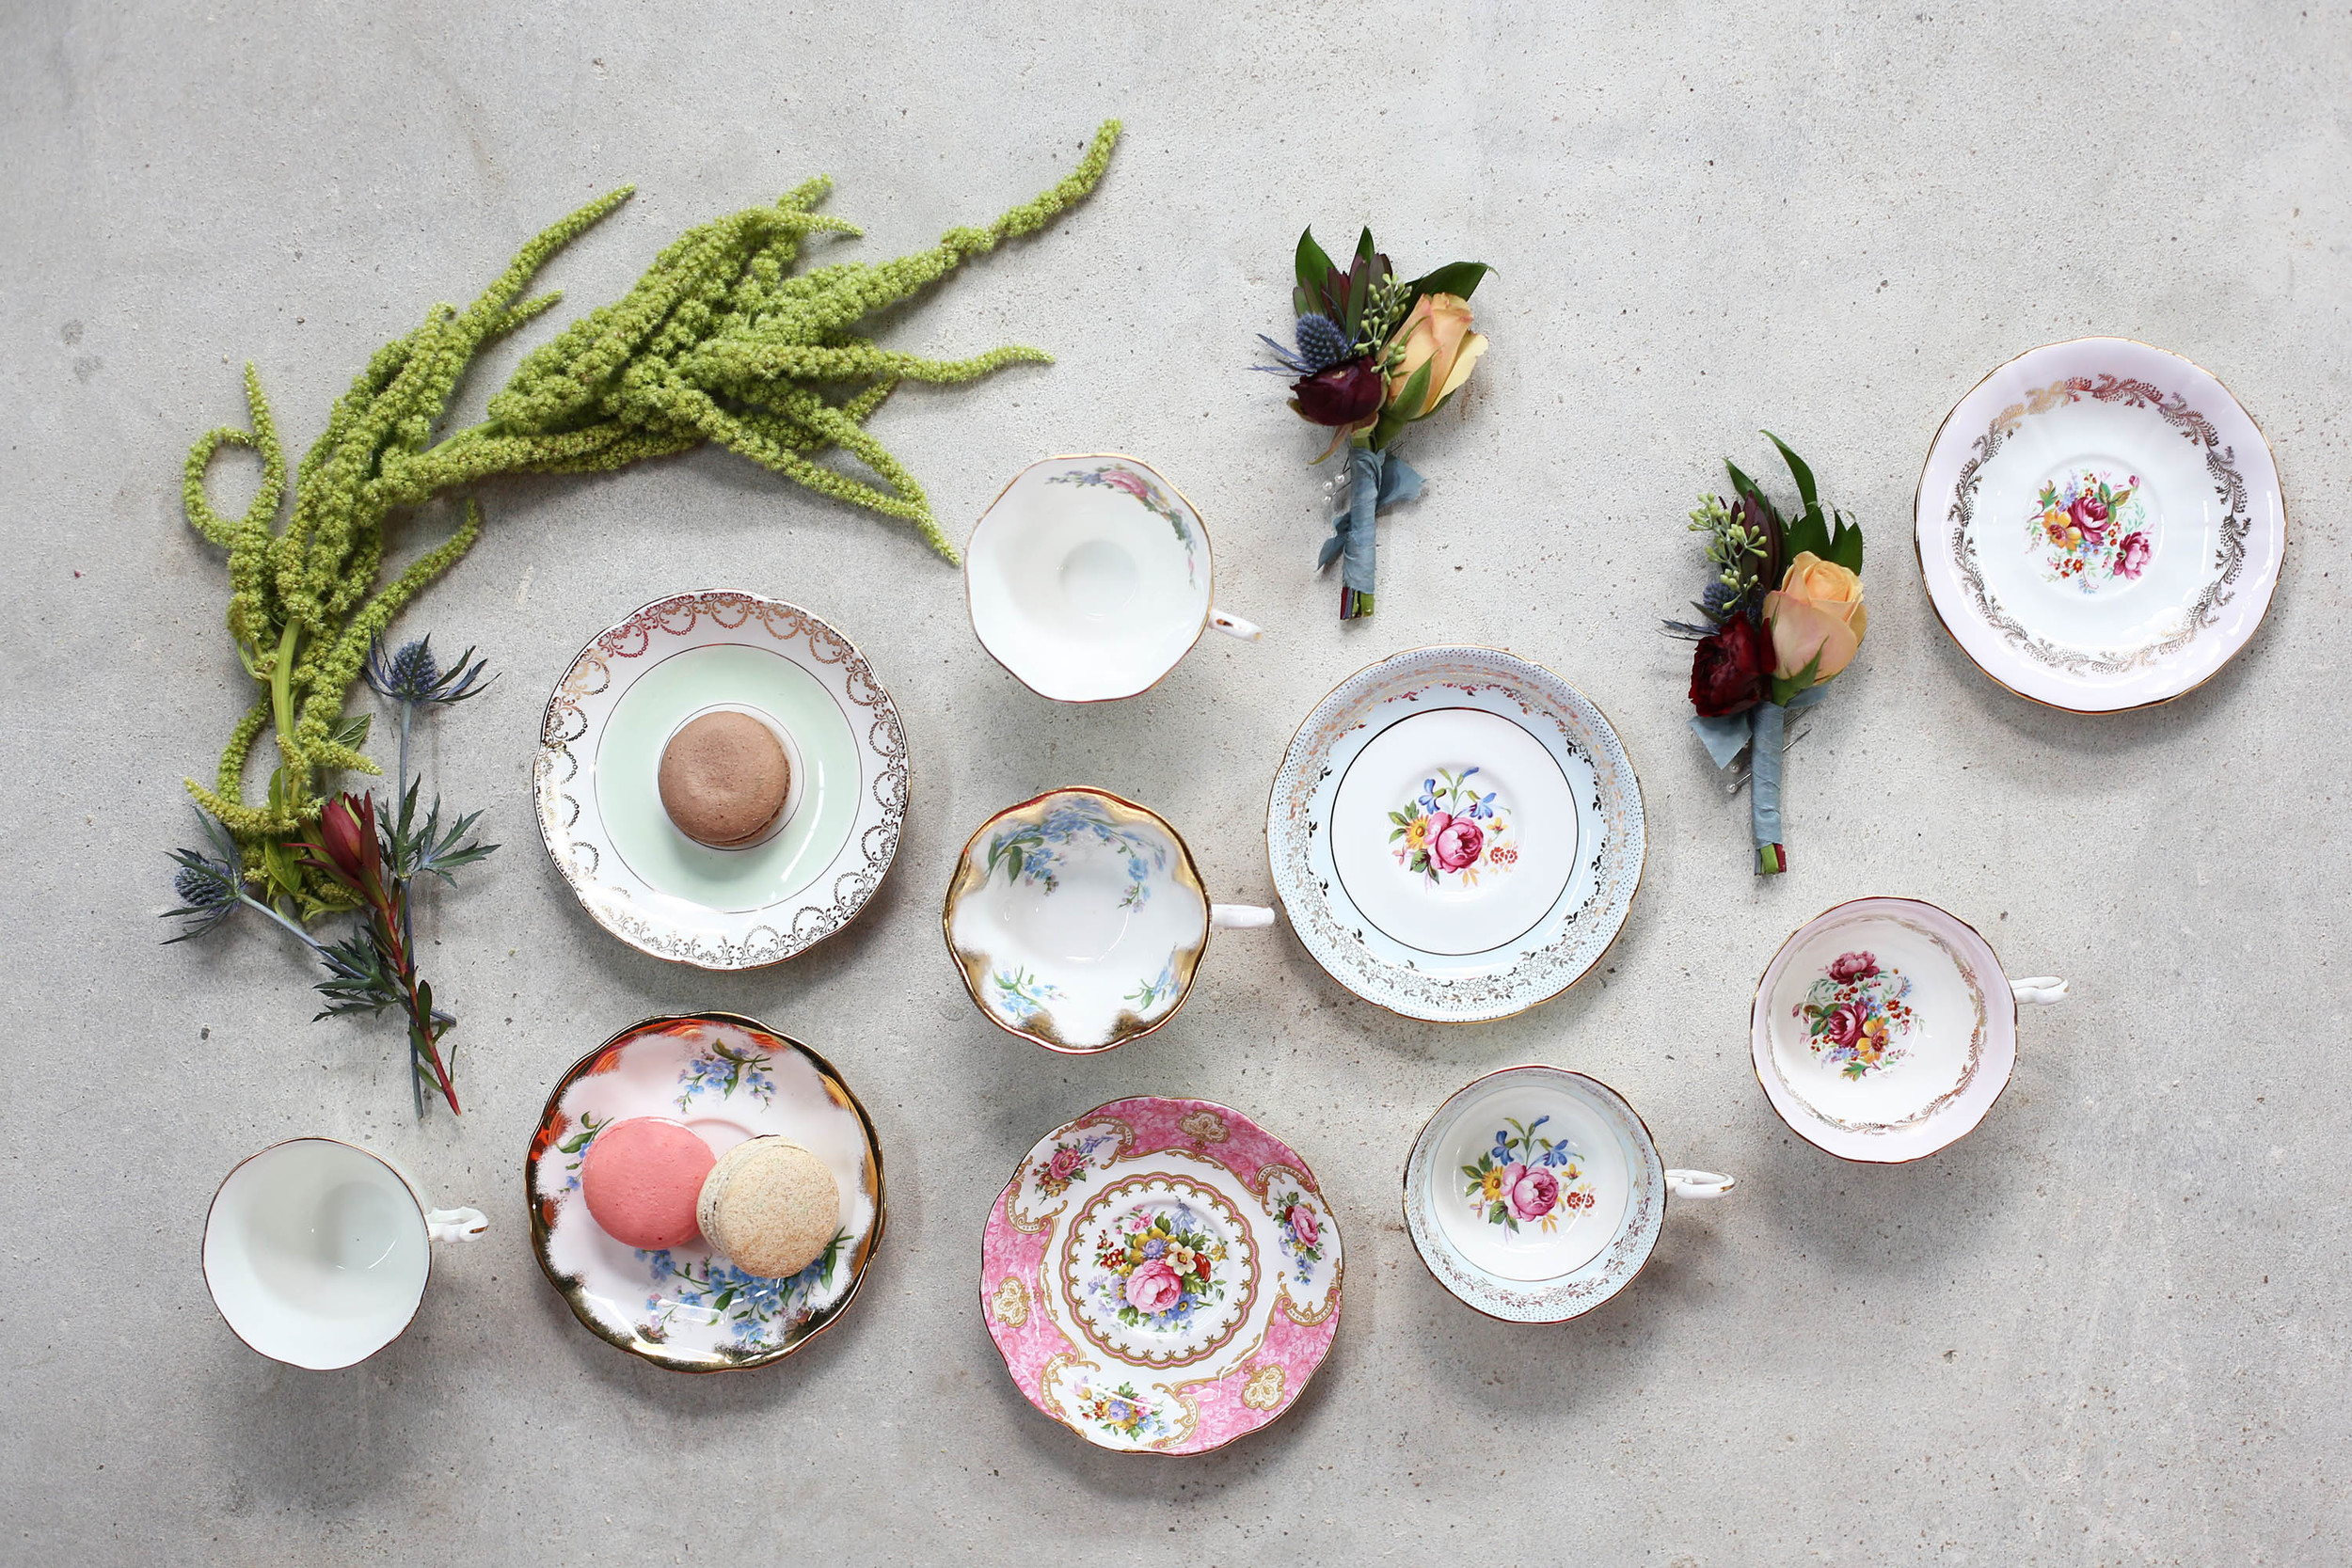 Plates from Whimsical Rose, Macarons from Amélie's and Flowers by Jimmy Blooms